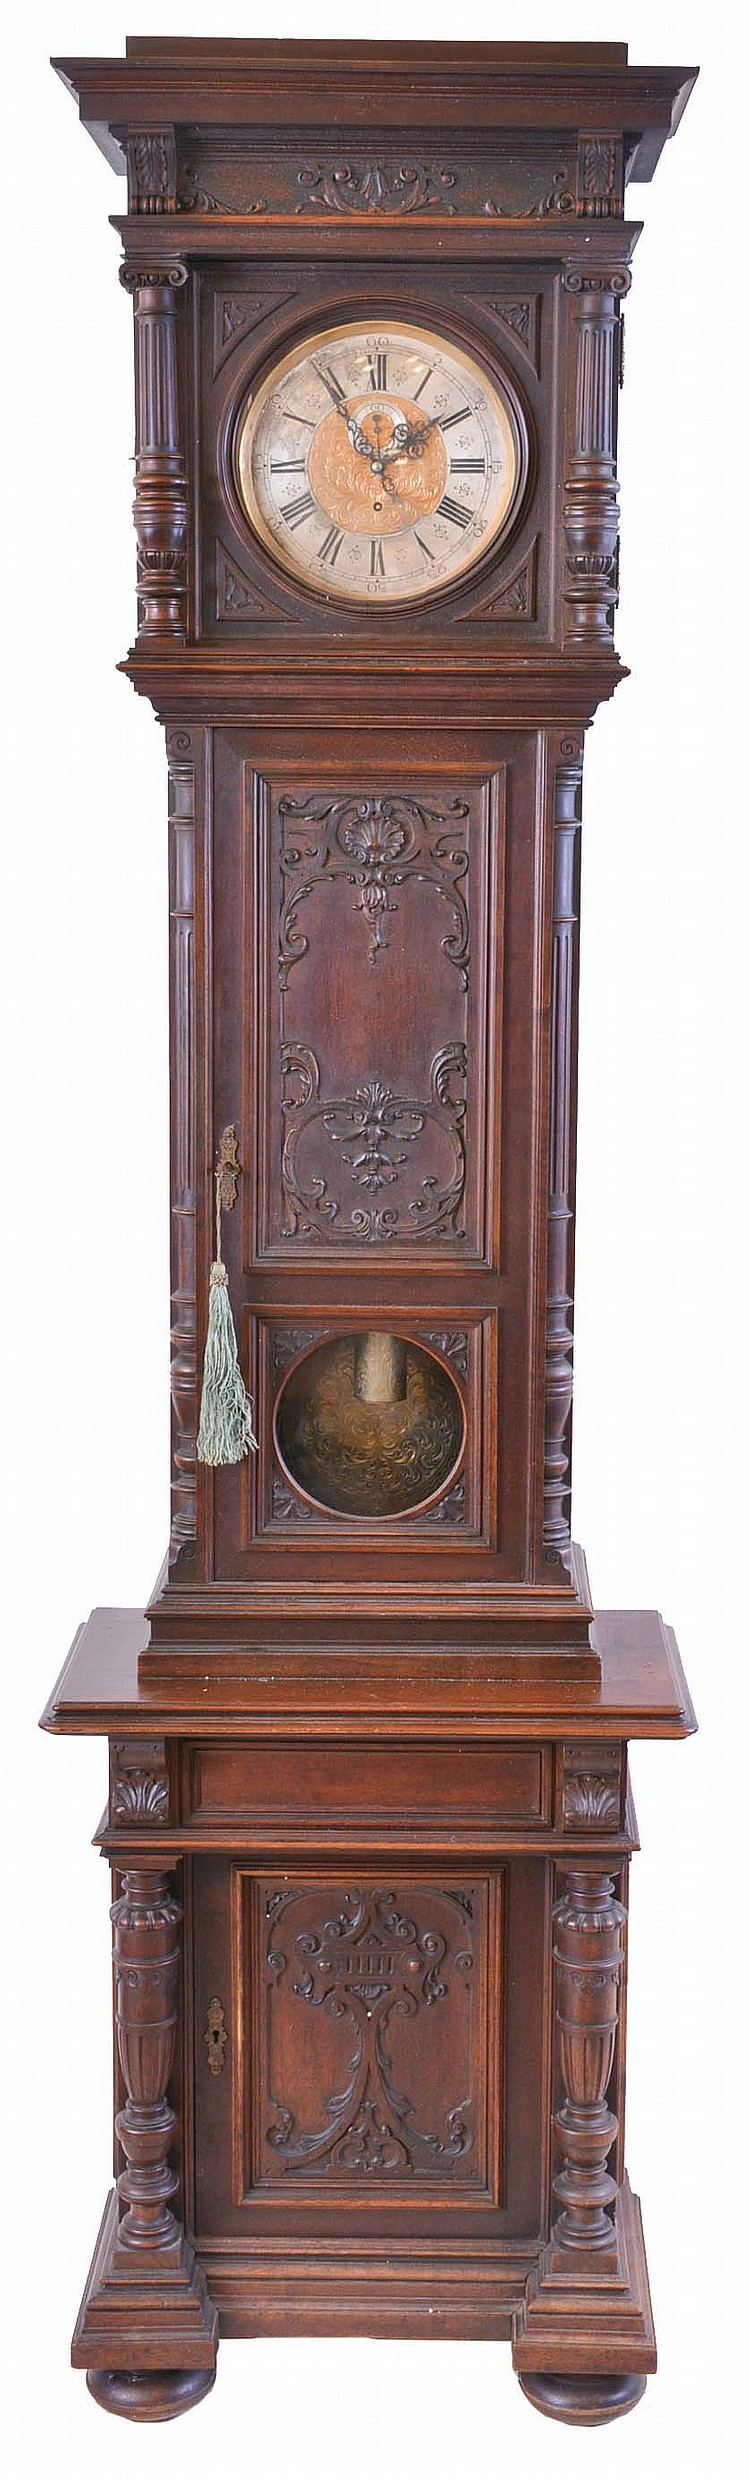 V. Postpischil, Vienna, Austria, long duration tall clock, 30 day, time only, weight driven movement in a carved walnut case with glazed window for engraved pendulum bob, bun feet and cabinet in base. The brass dial has silvered chapter ring is